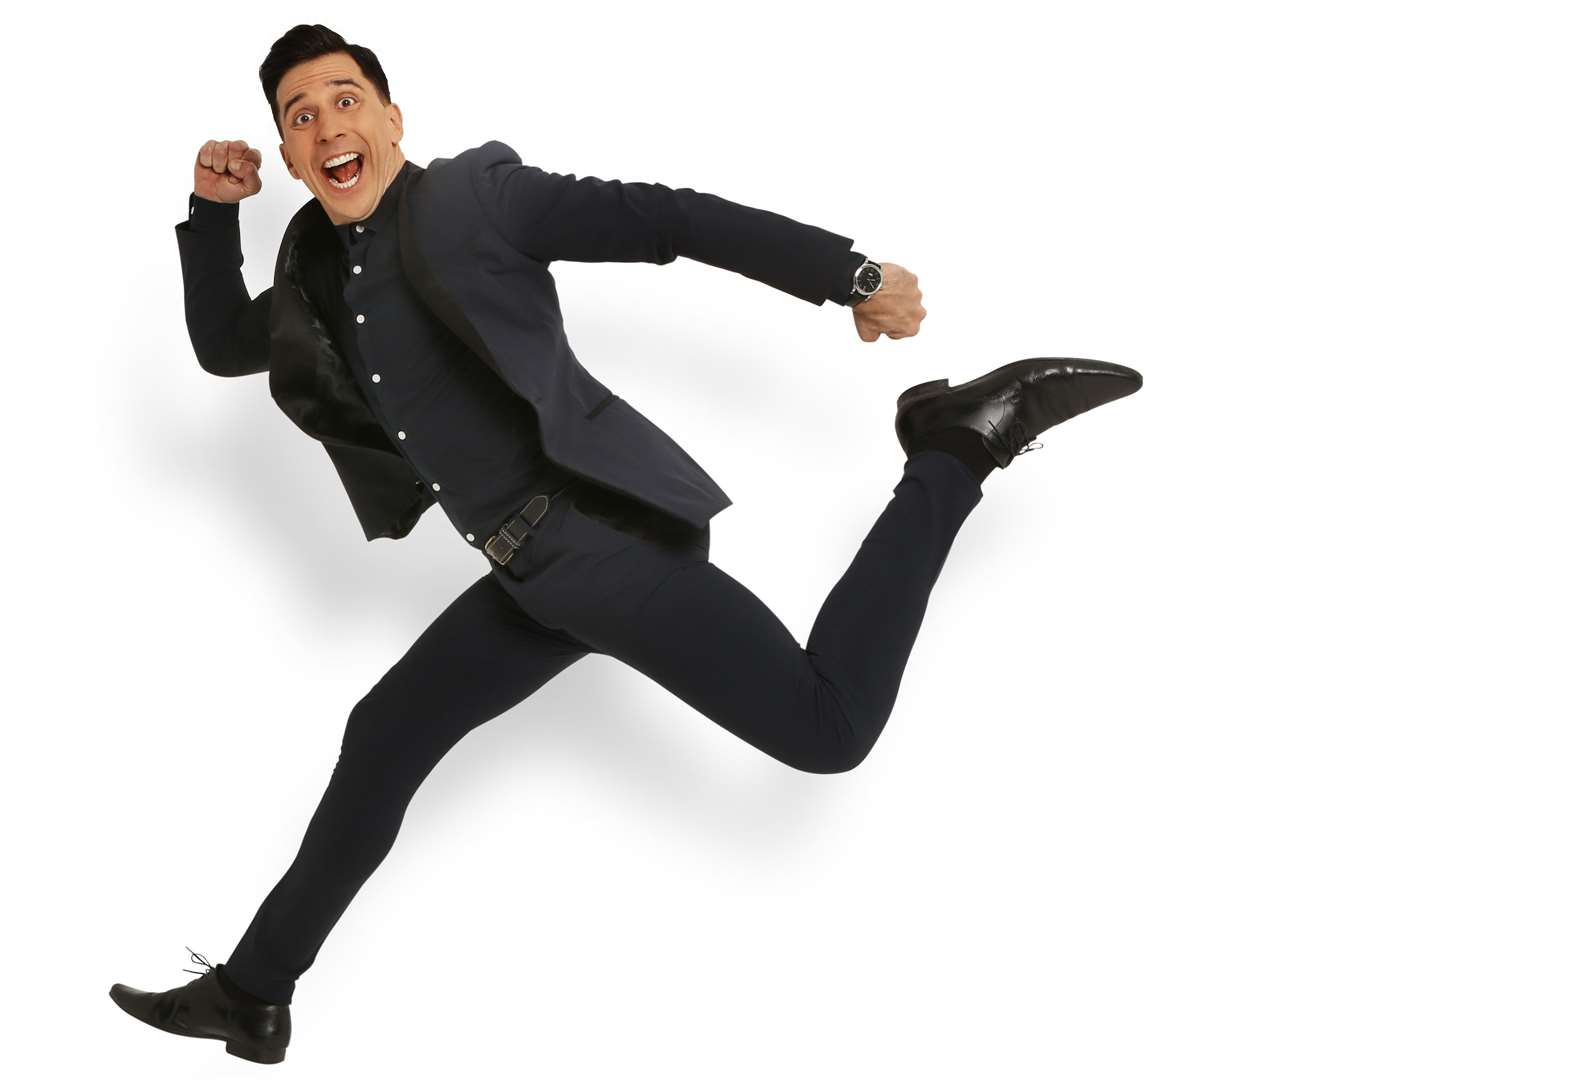 Interview: Russell Kane is more than a stand-up